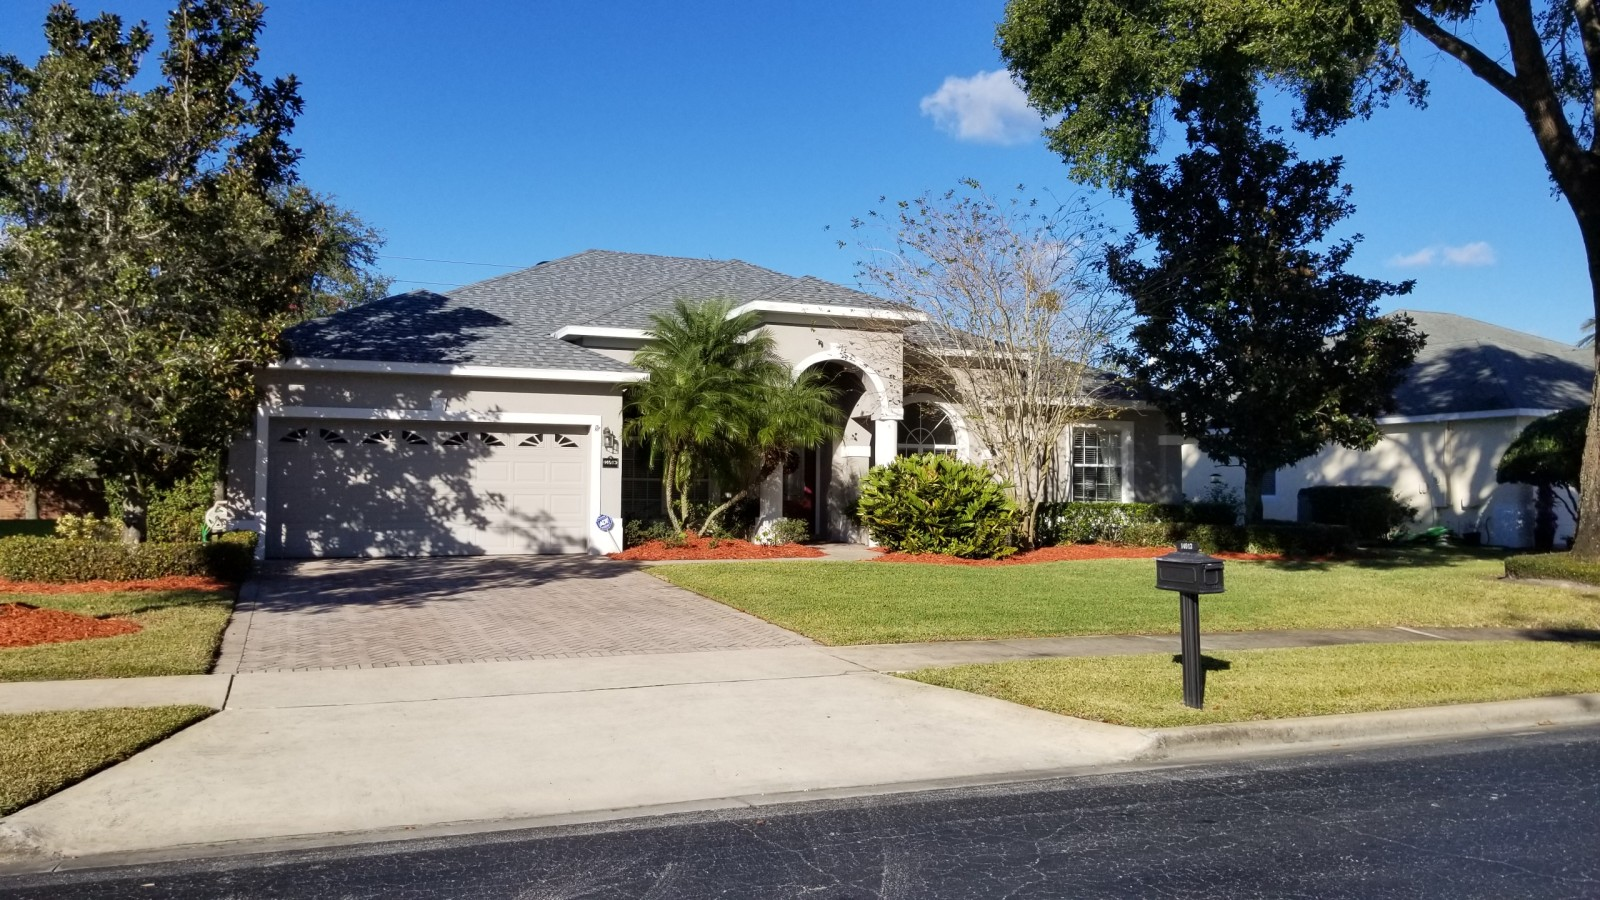 Ideal location for a convenient lifestyle! Beautiful Winter Garden home in the GATED COMMUNITY of Windward Cay showcases a THREE WAY SPLIT FLOORPLAN, second floor BONUS ROOM, COVERED LANAI all with NO REAR NEIGHBORS!  Located just 1.5 miles from the Winter Garden Village, minutes from the Downtown Winter Garden Pavillion and Farmers Market, the West Orange bike trail, SR 429 and SR 408. You will be IMPRESSED, don't miss the chance to make this stunning home yours!